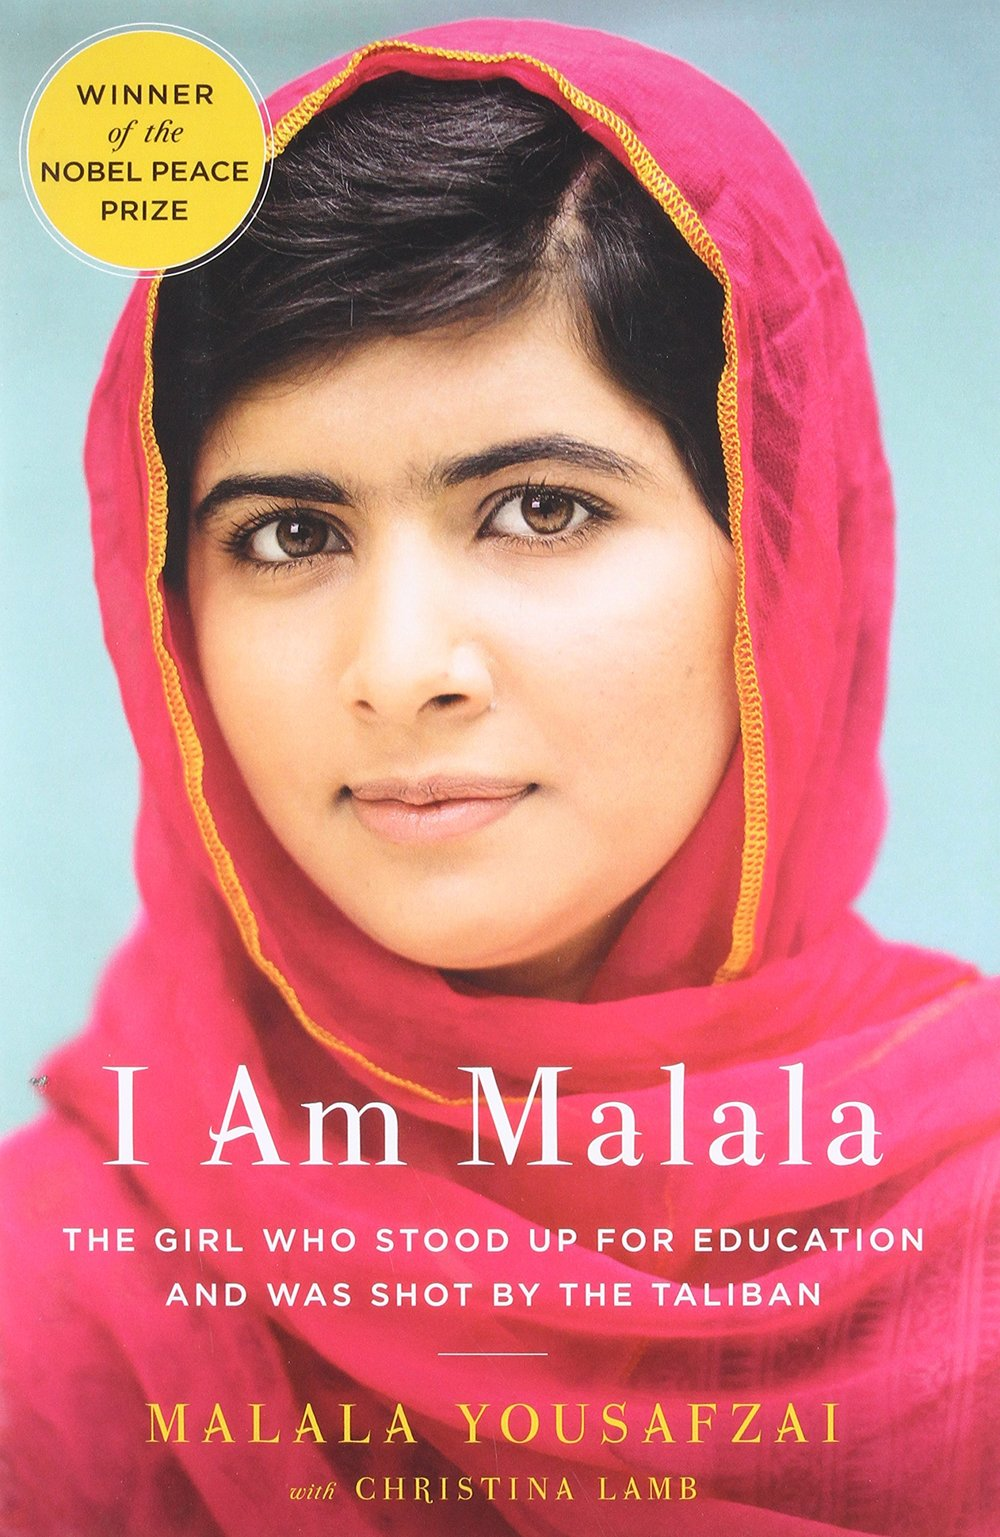 Inspiring Books For Young Women - I Am Malala by Malala Yousafzai